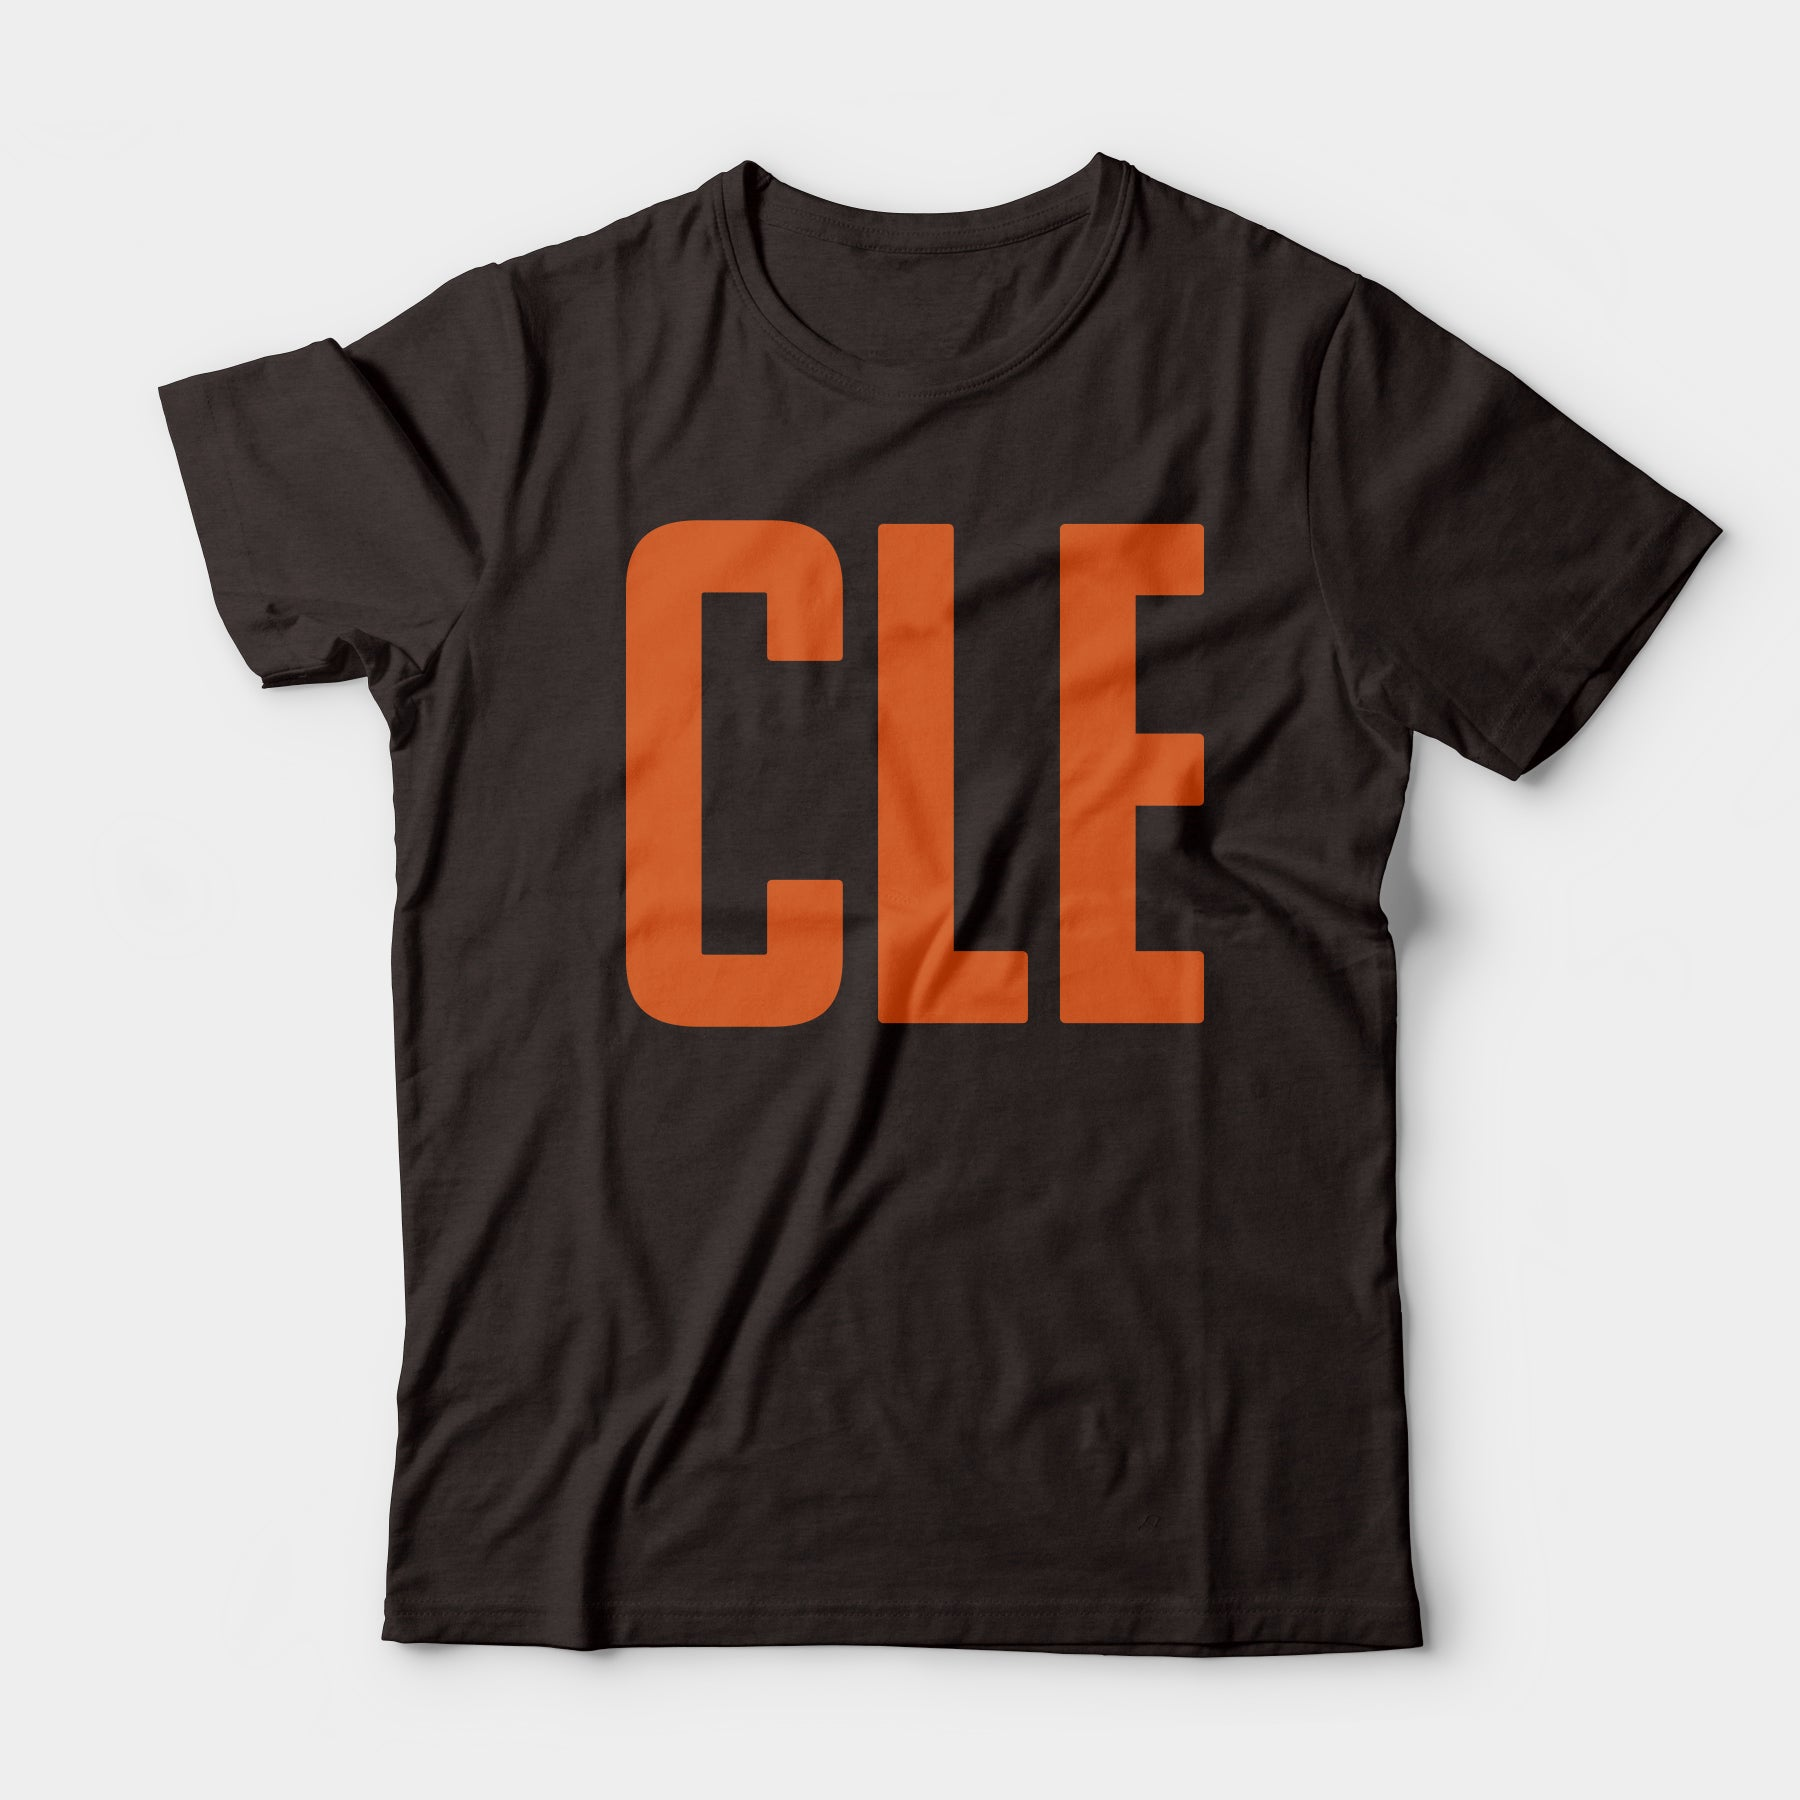 CLE Tee, Brown